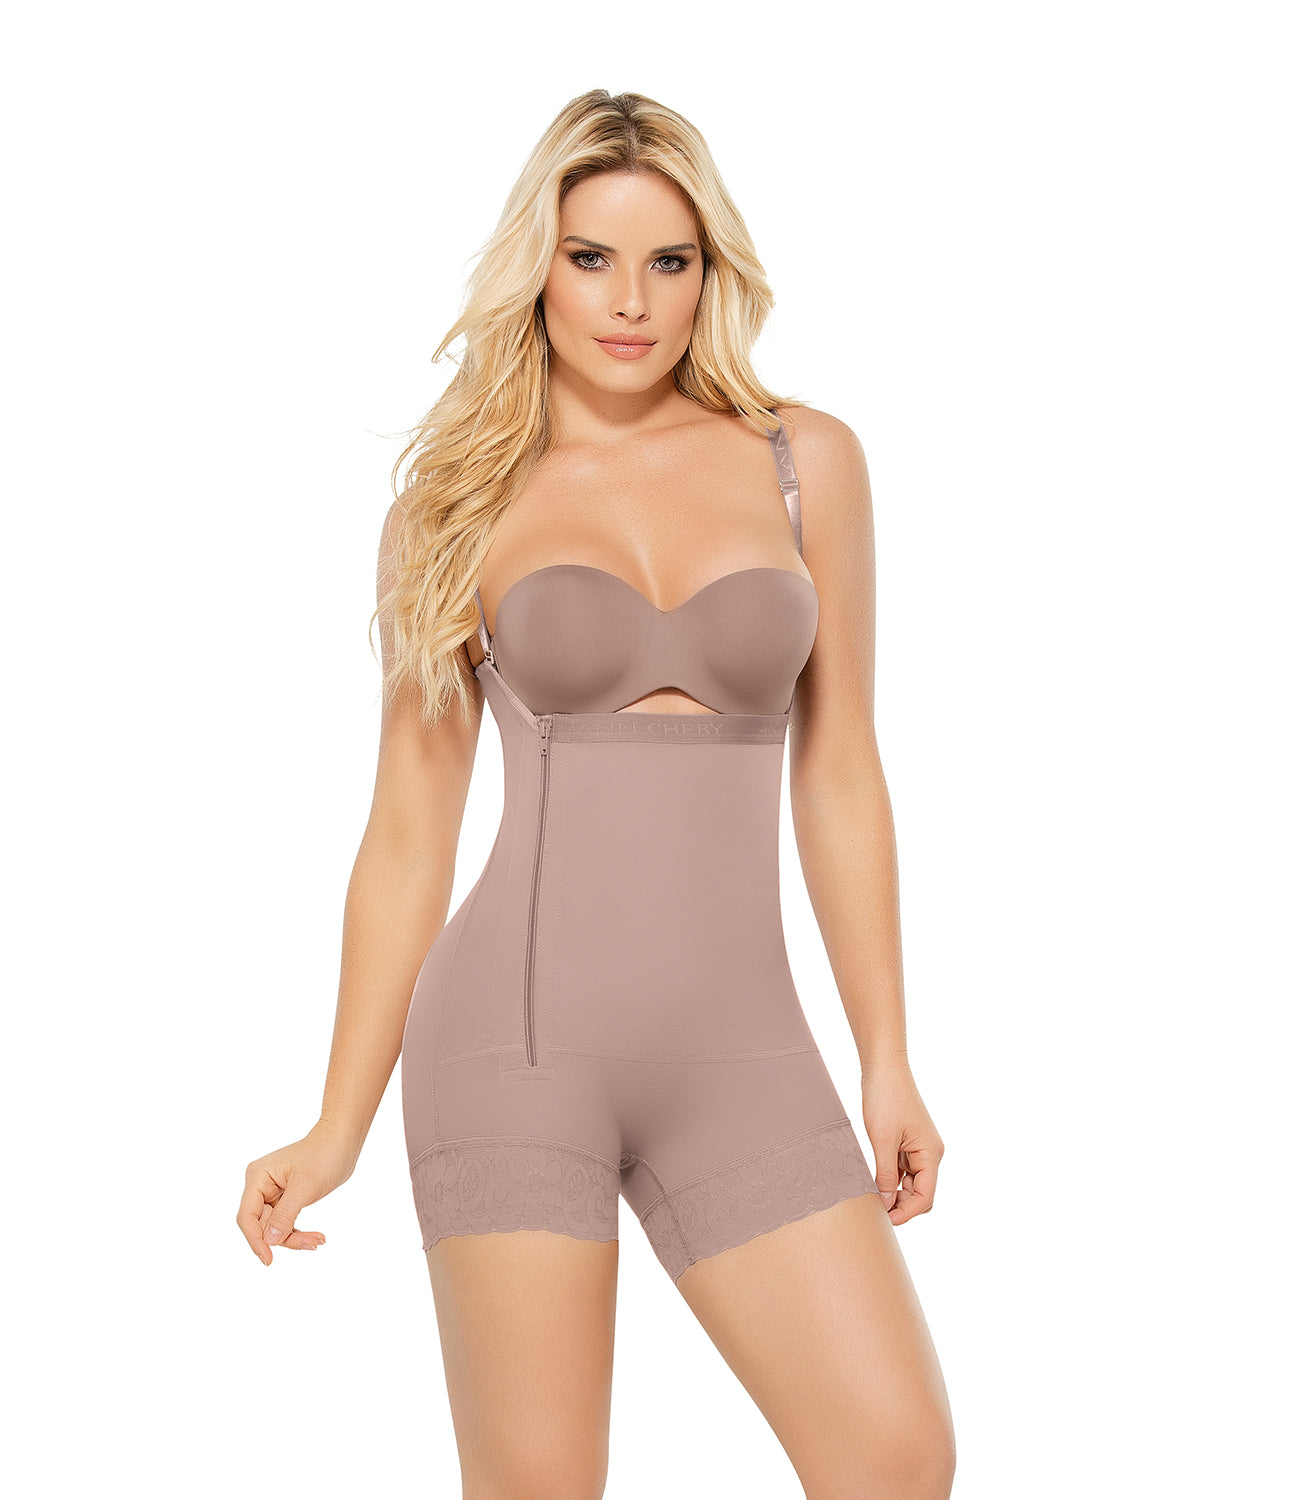 Ann Chery 5146 Mara Body Short